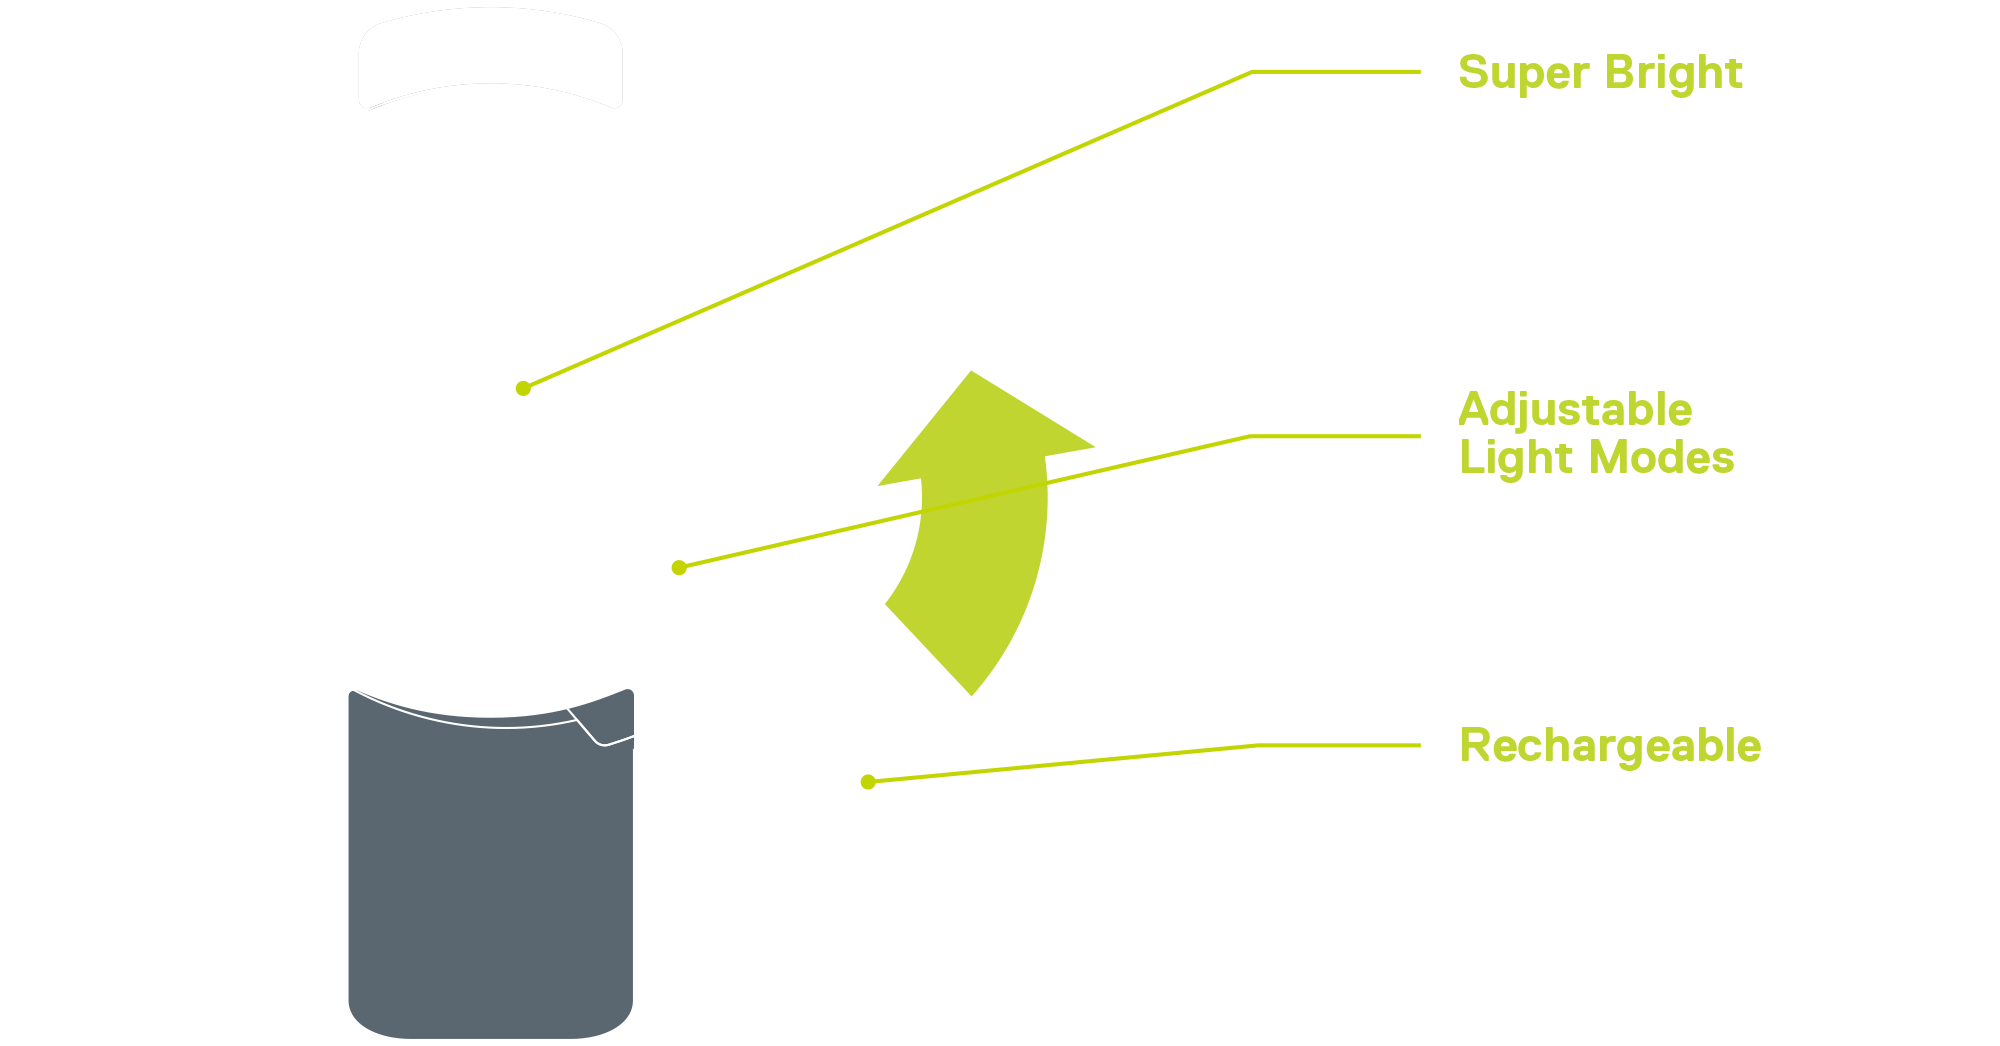 Bkin Personal Safety Light diagram